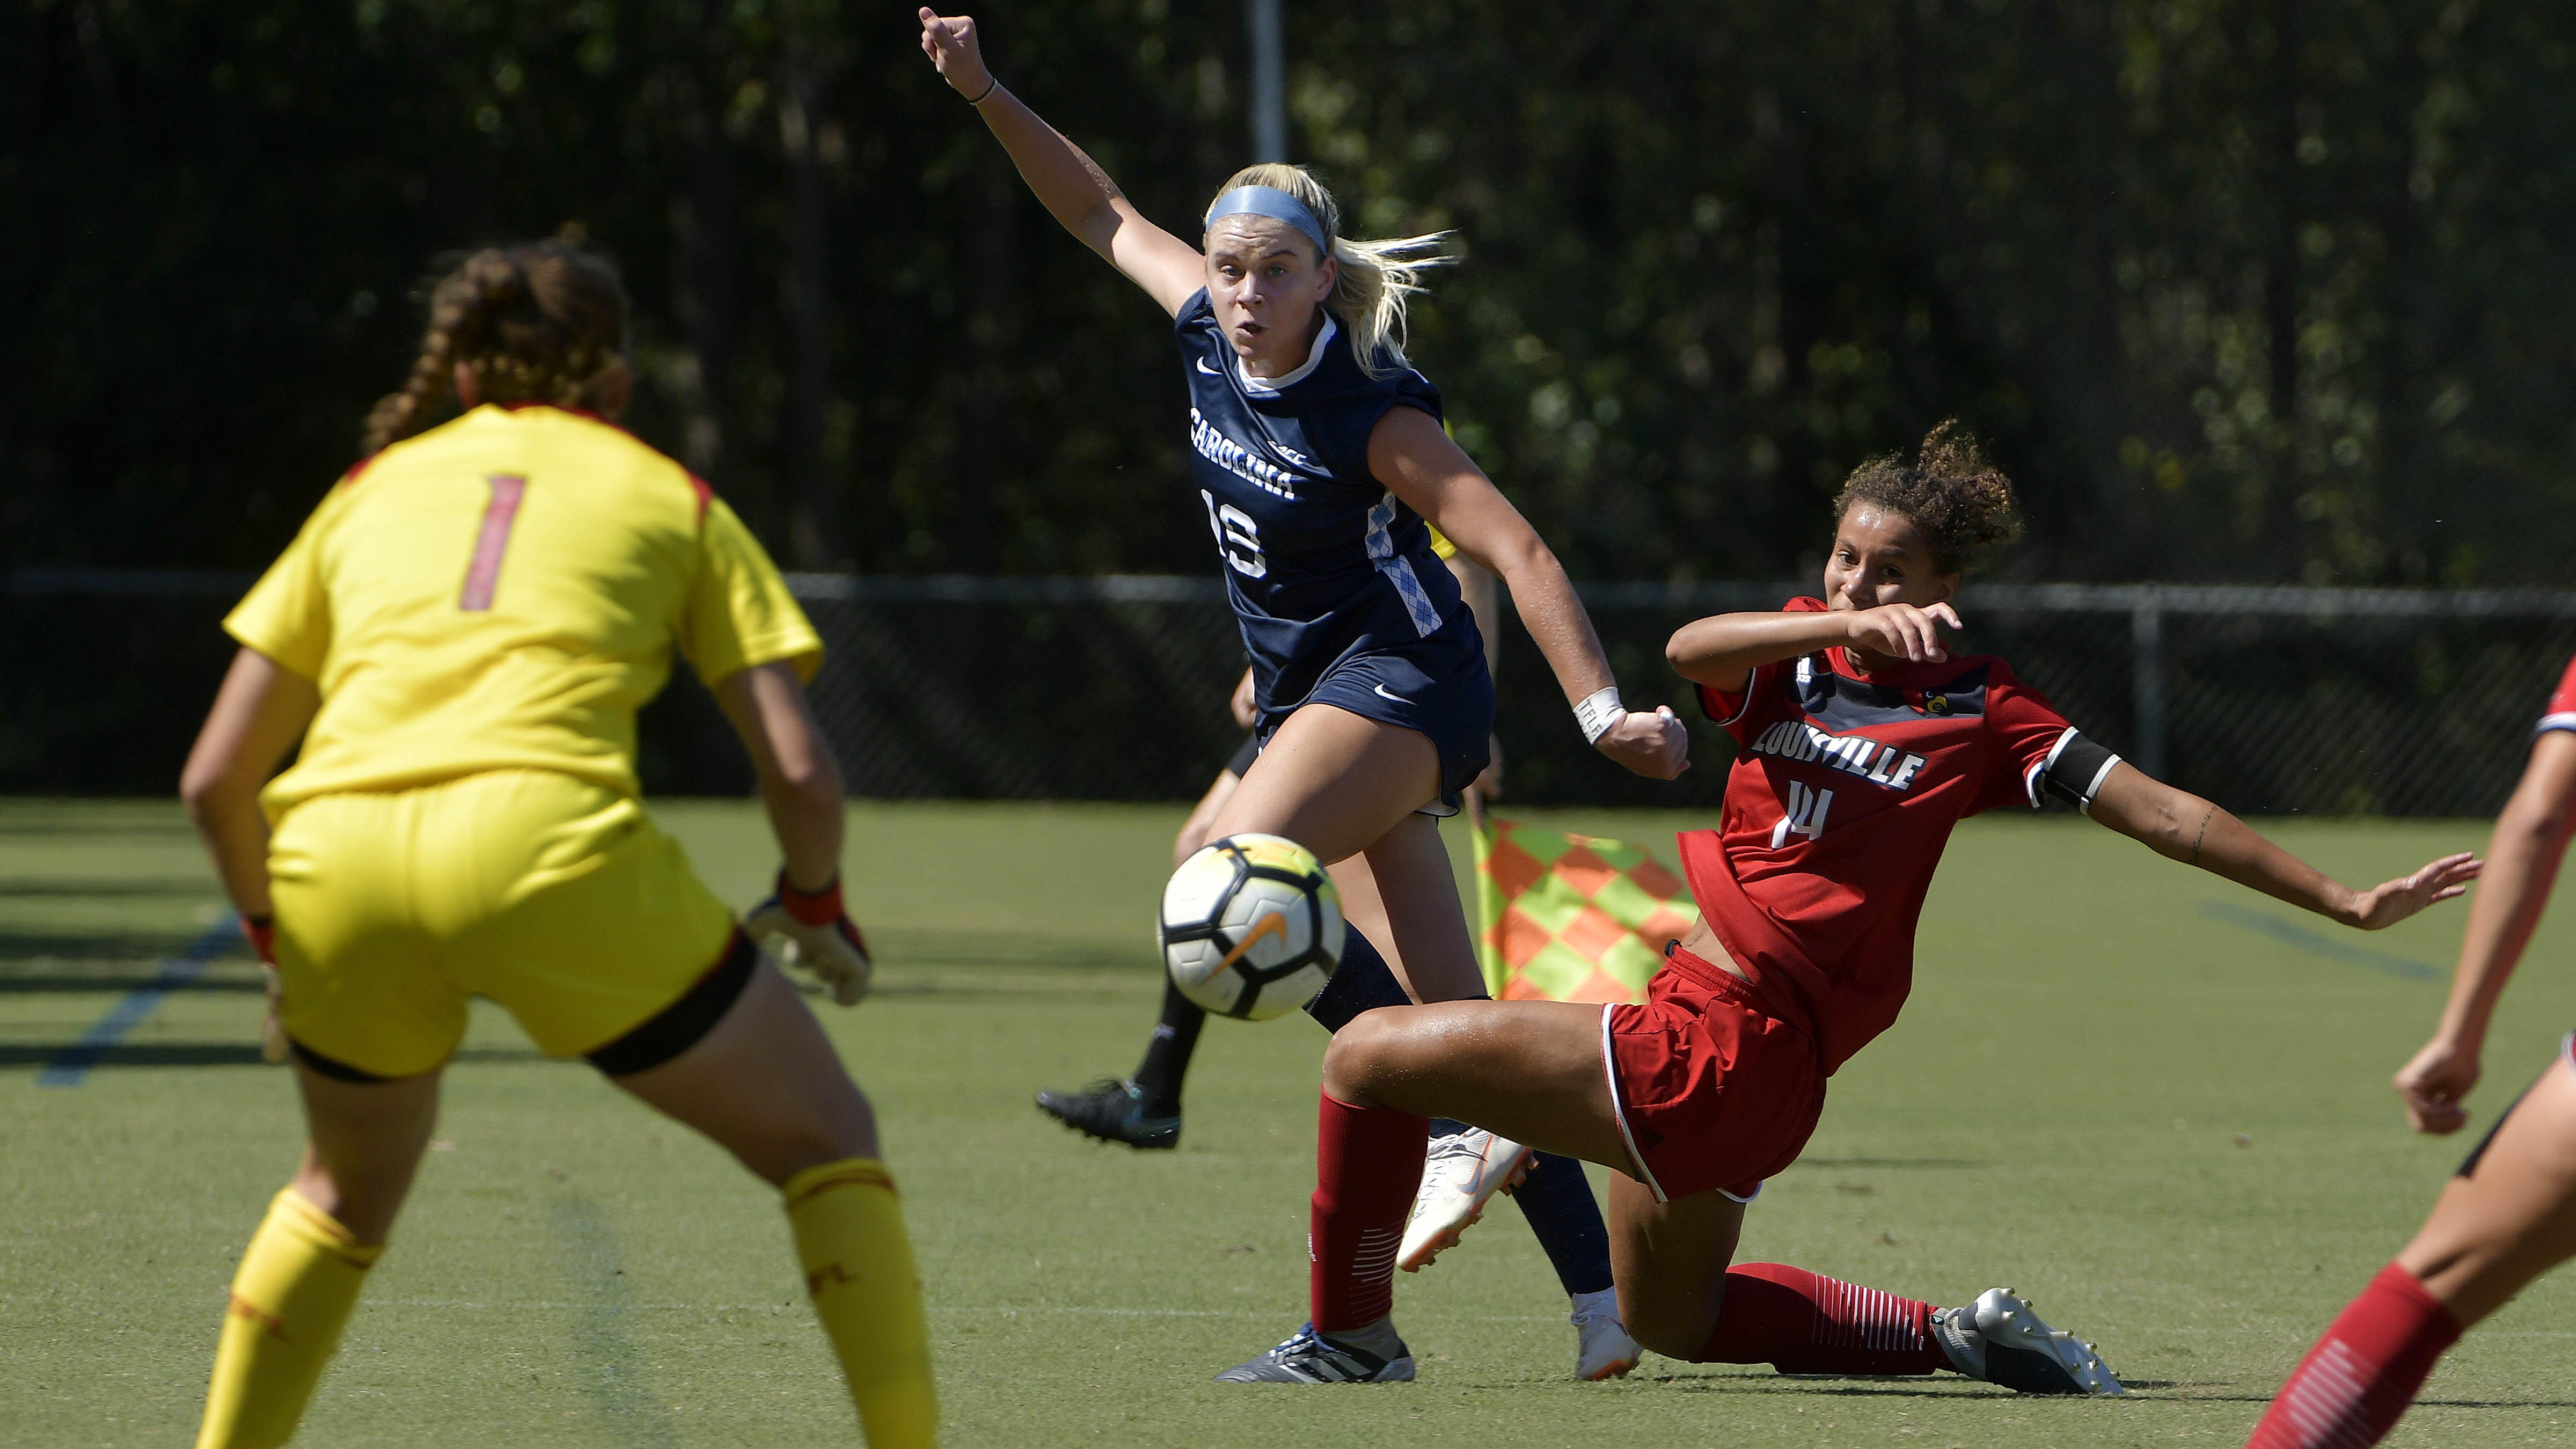 North Carolina's Alessia Russo and Stanford's Catarina Macario headline  women's soccer players to watch in 2019